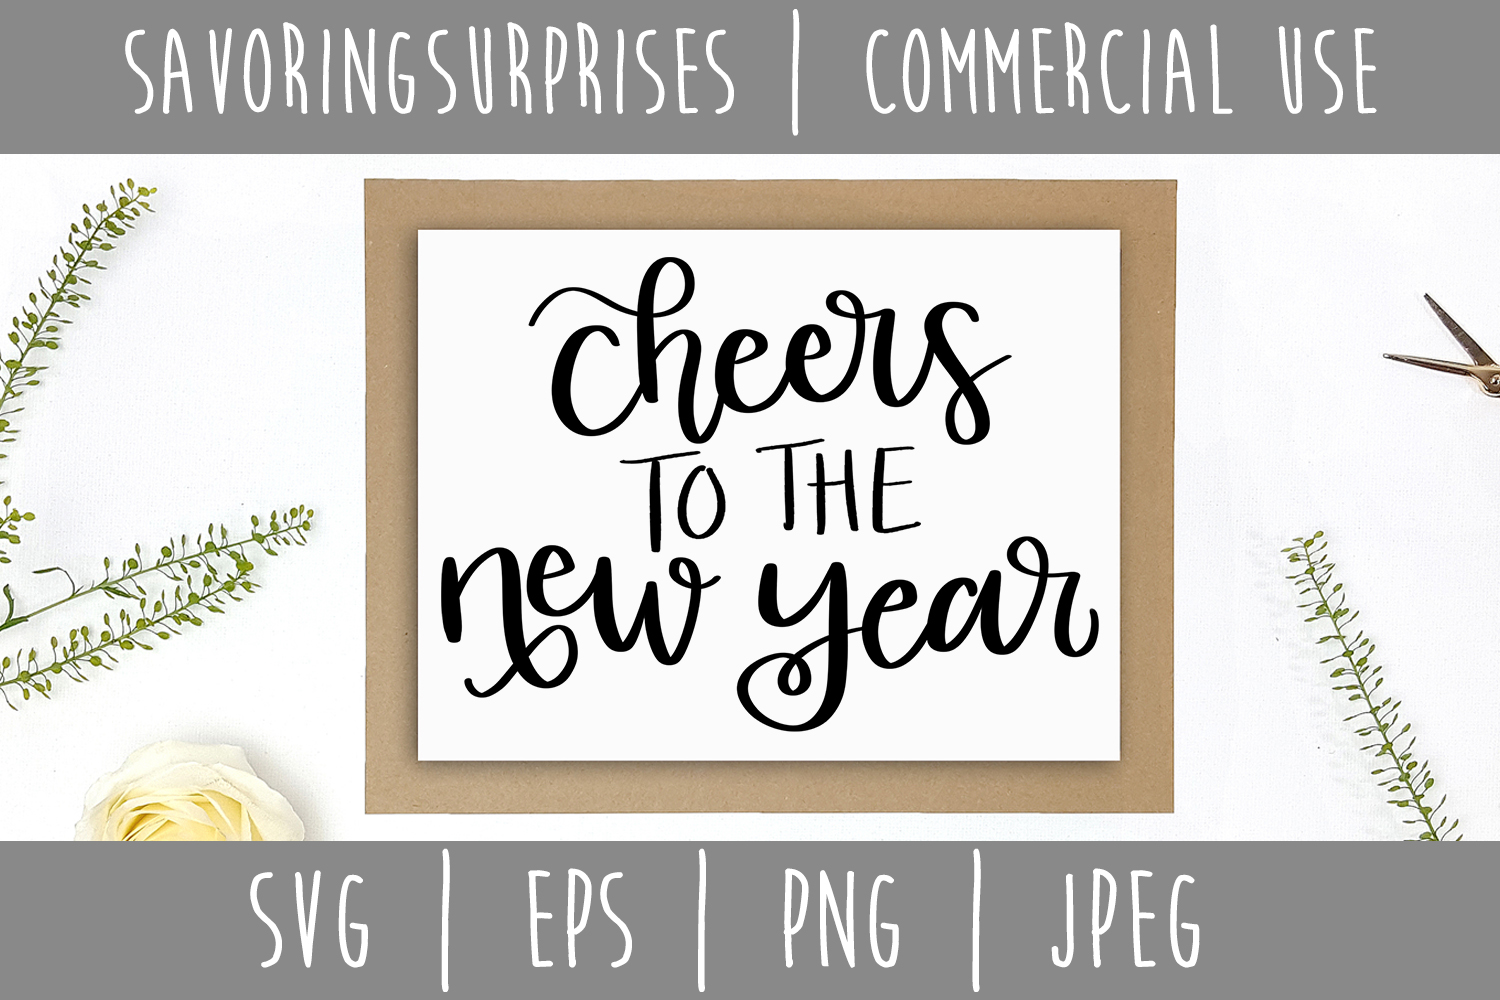 Download Free Cheers To The New Year Svg Graphic By Savoringsurprises for Cricut Explore, Silhouette and other cutting machines.